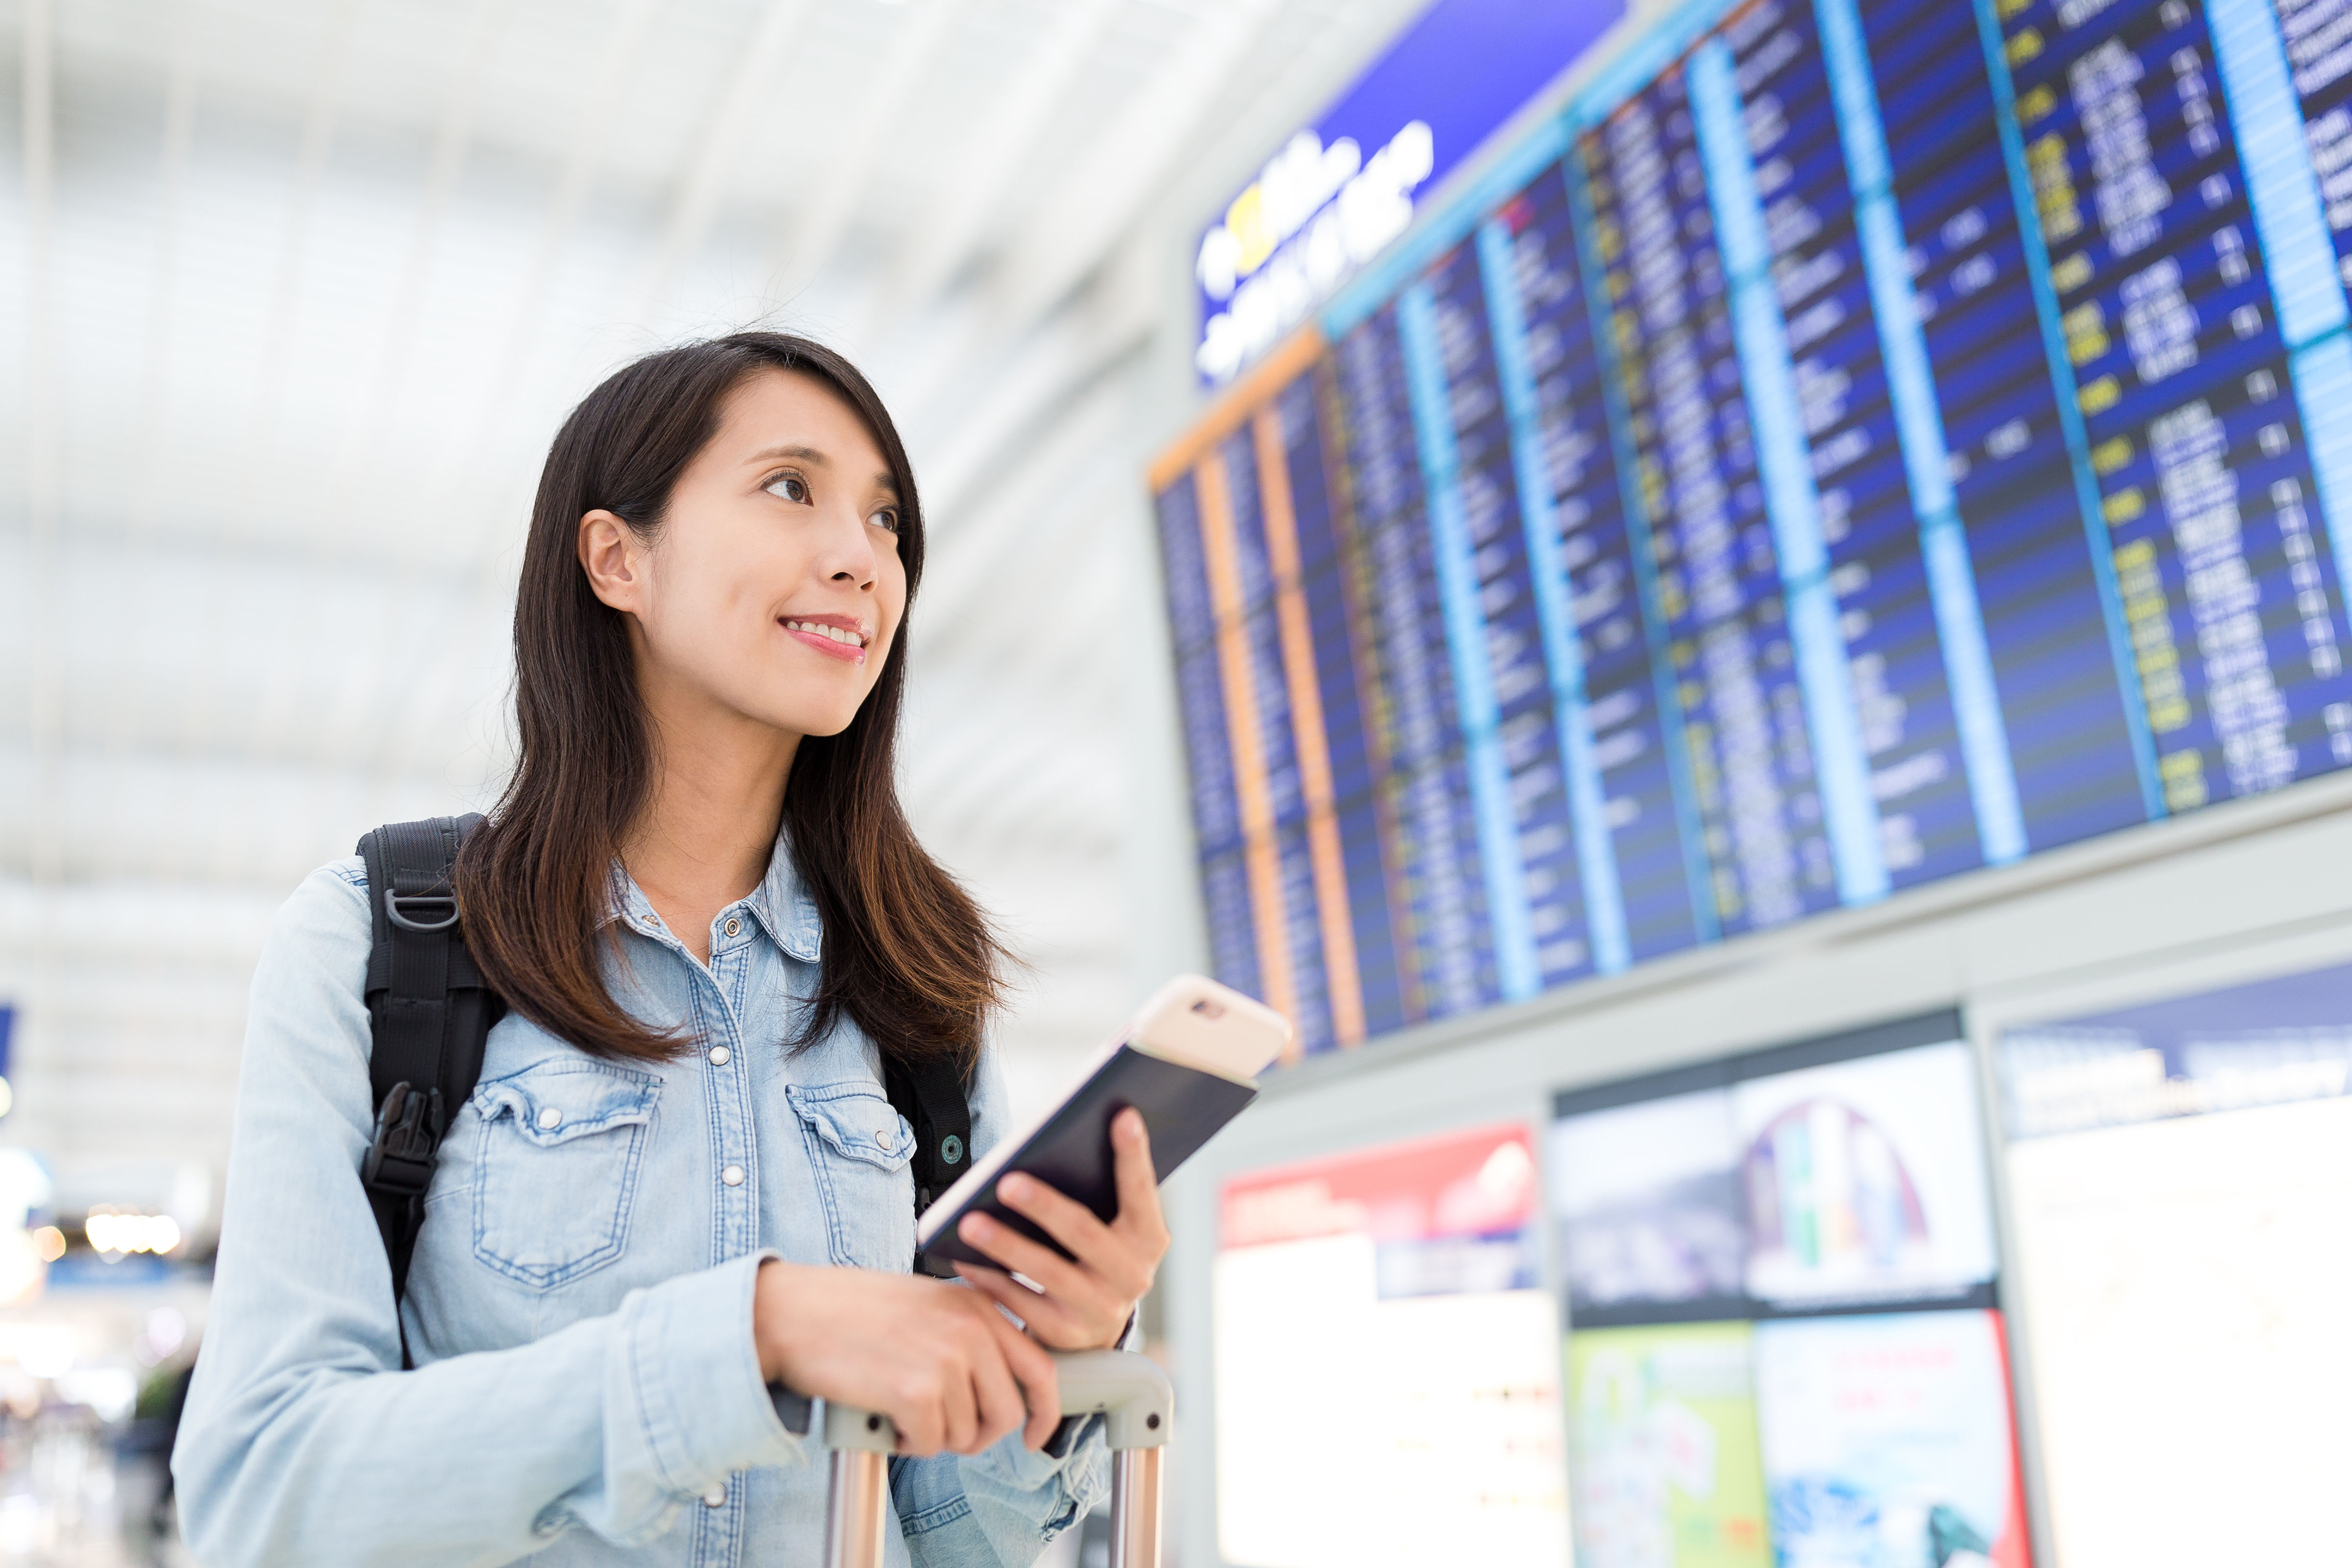 Woman checking on display screen at the airport